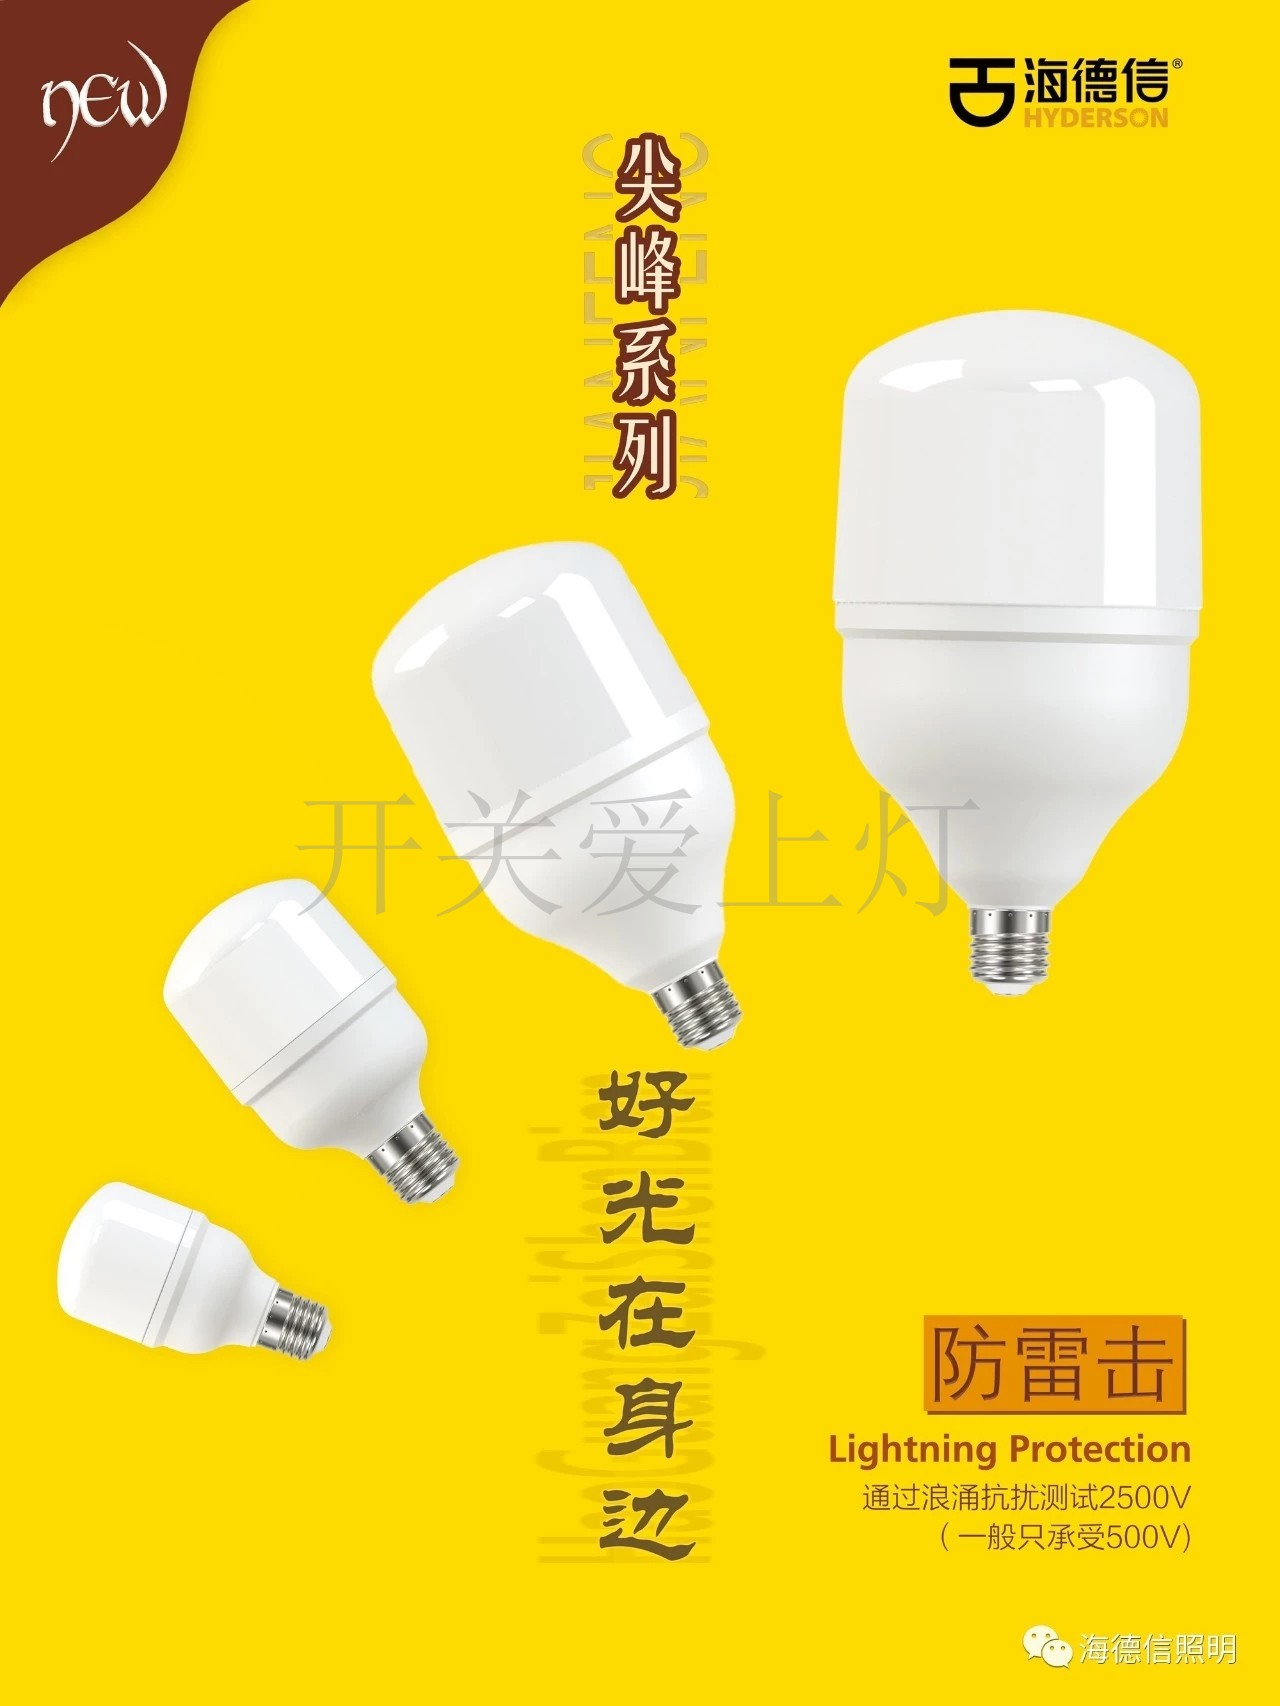 Haidexin LED lighting energy-saving bulb has no blue light hazard and lightning protection. There is a large power excess E27 in the household plant